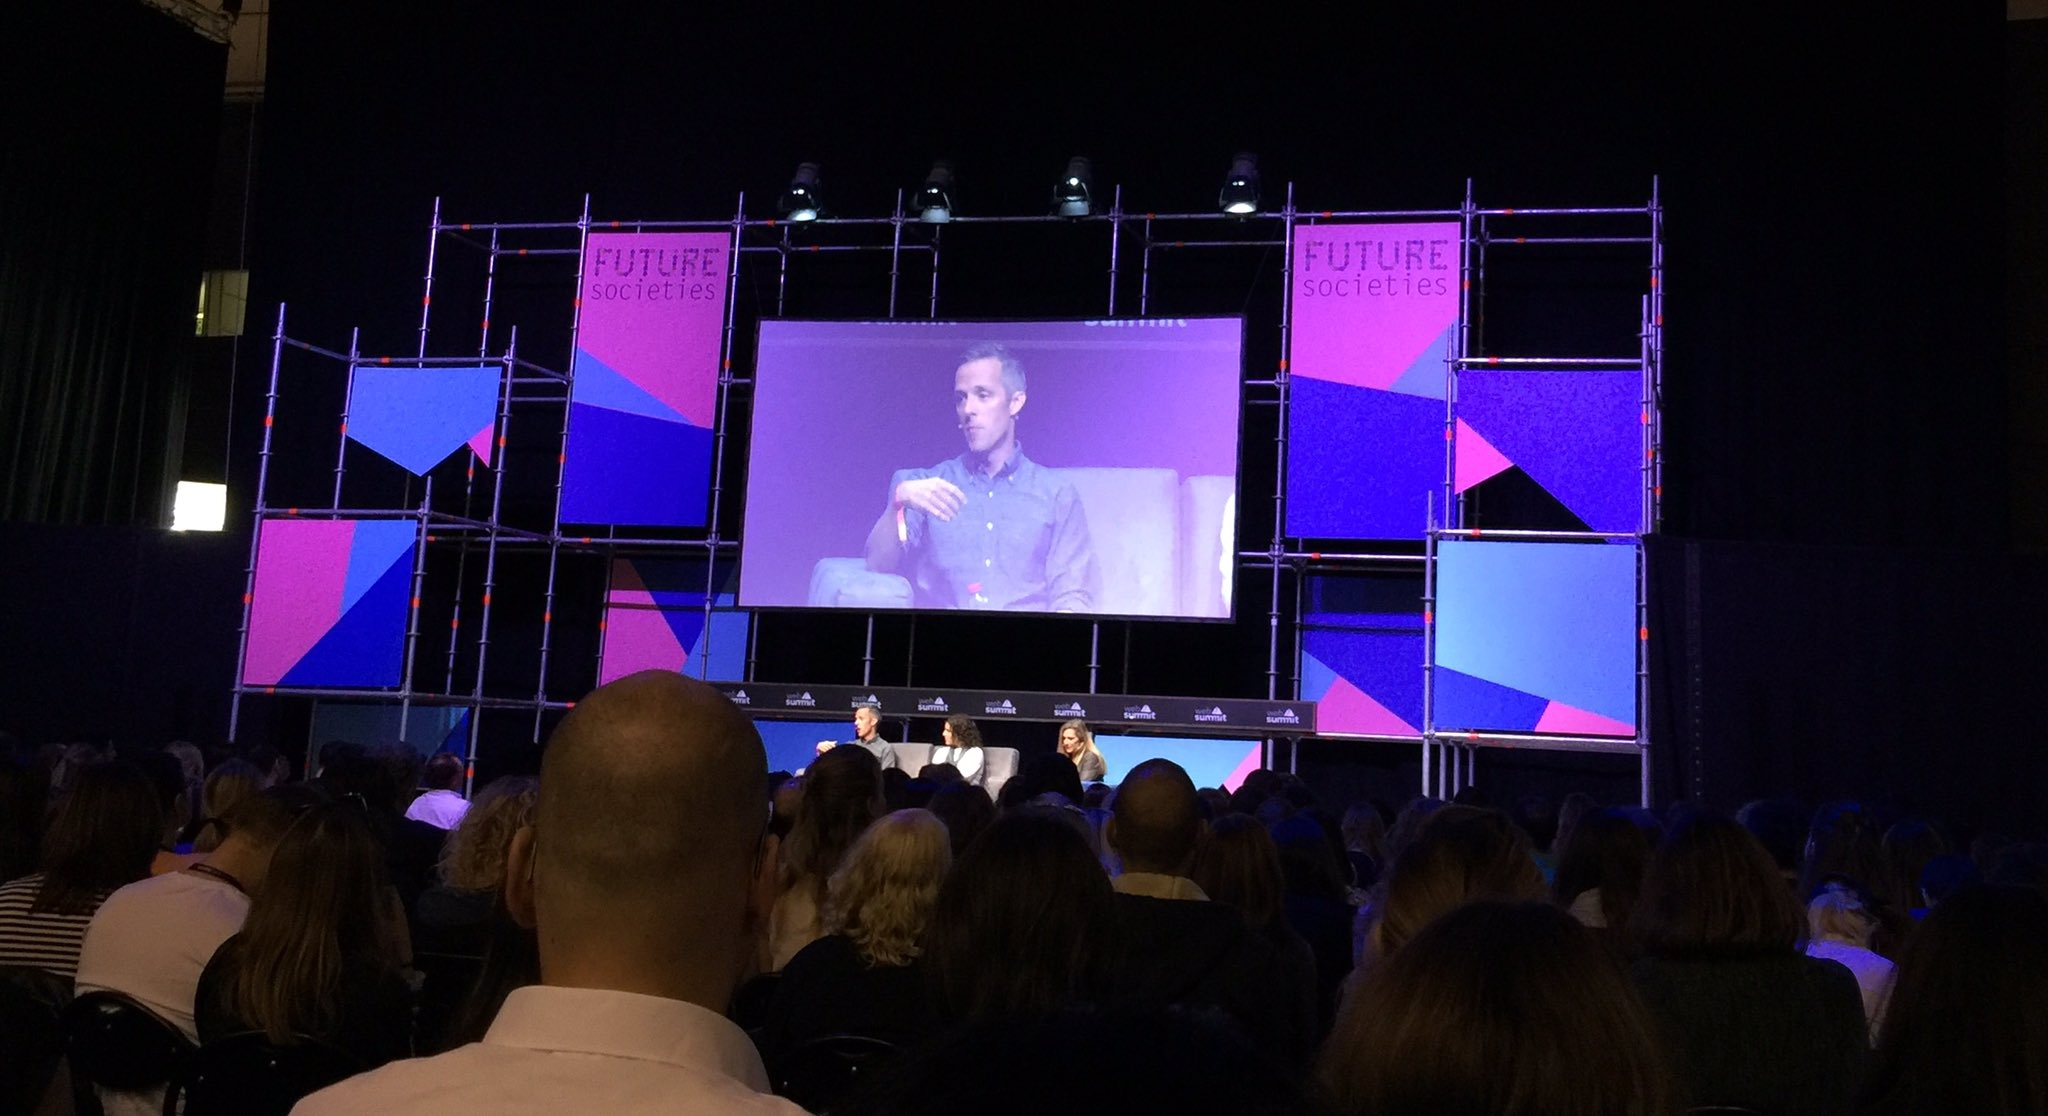 "#FutureSocieties at #websummit2016 stage talking about social good & tech companies -""give forward, not give back"" and values in tech https://t.co/WfCsPbXHTu"